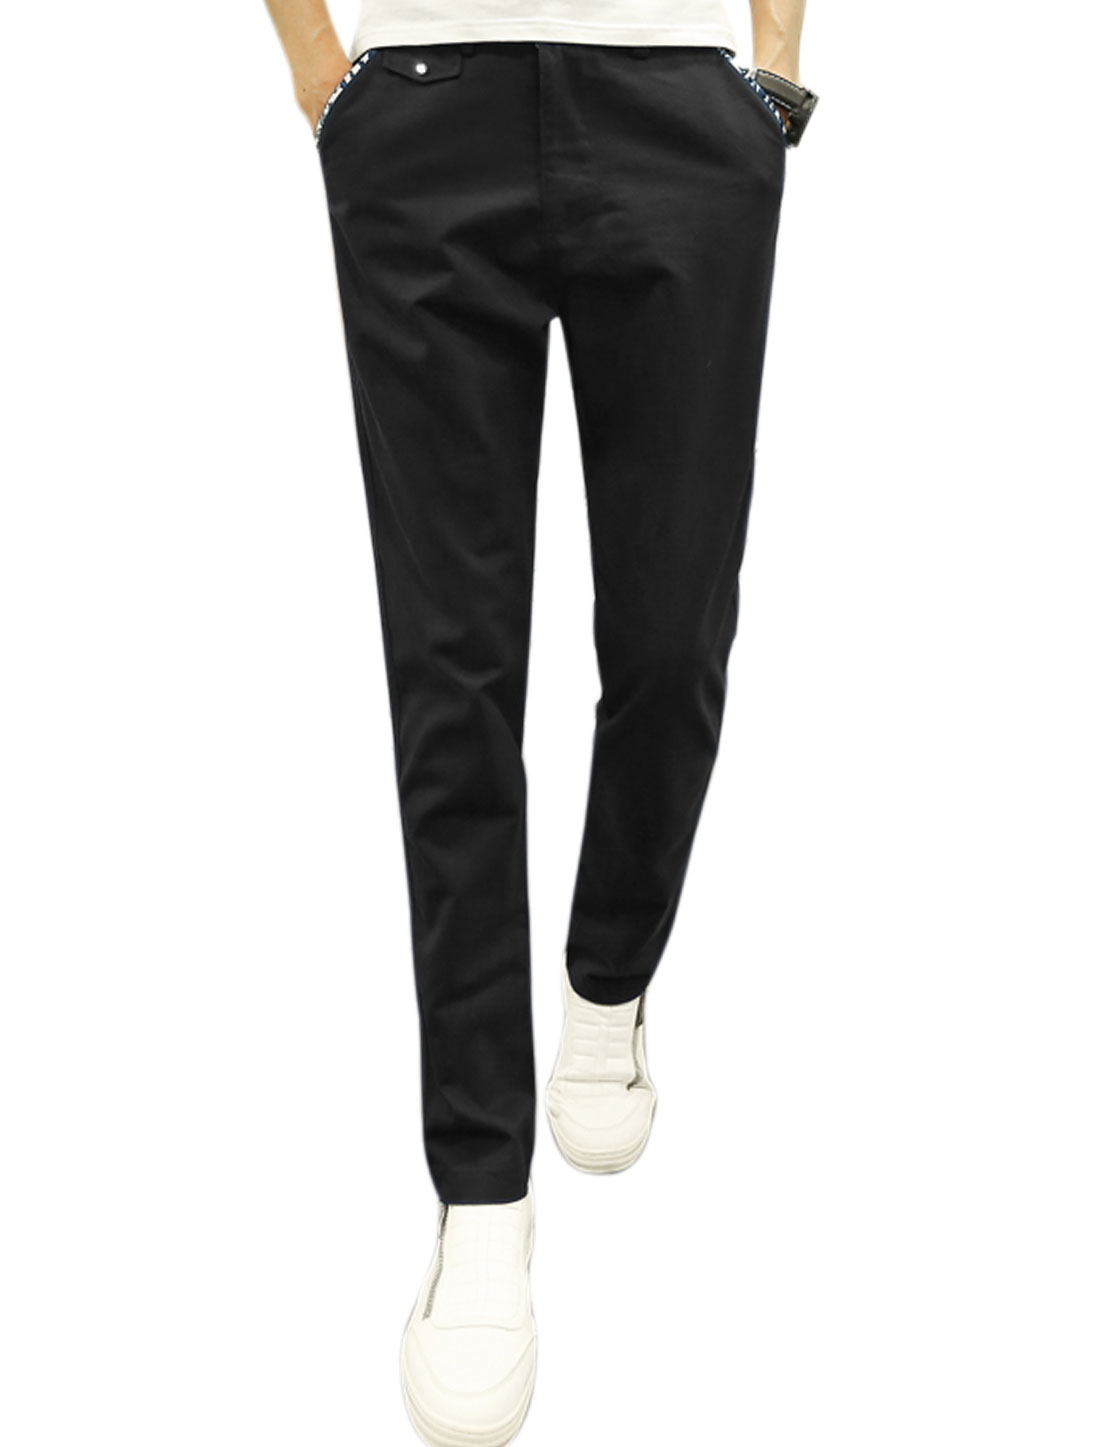 Men Zip Fly Button Closed Tapered Four Pockets Casual Pants Black W30